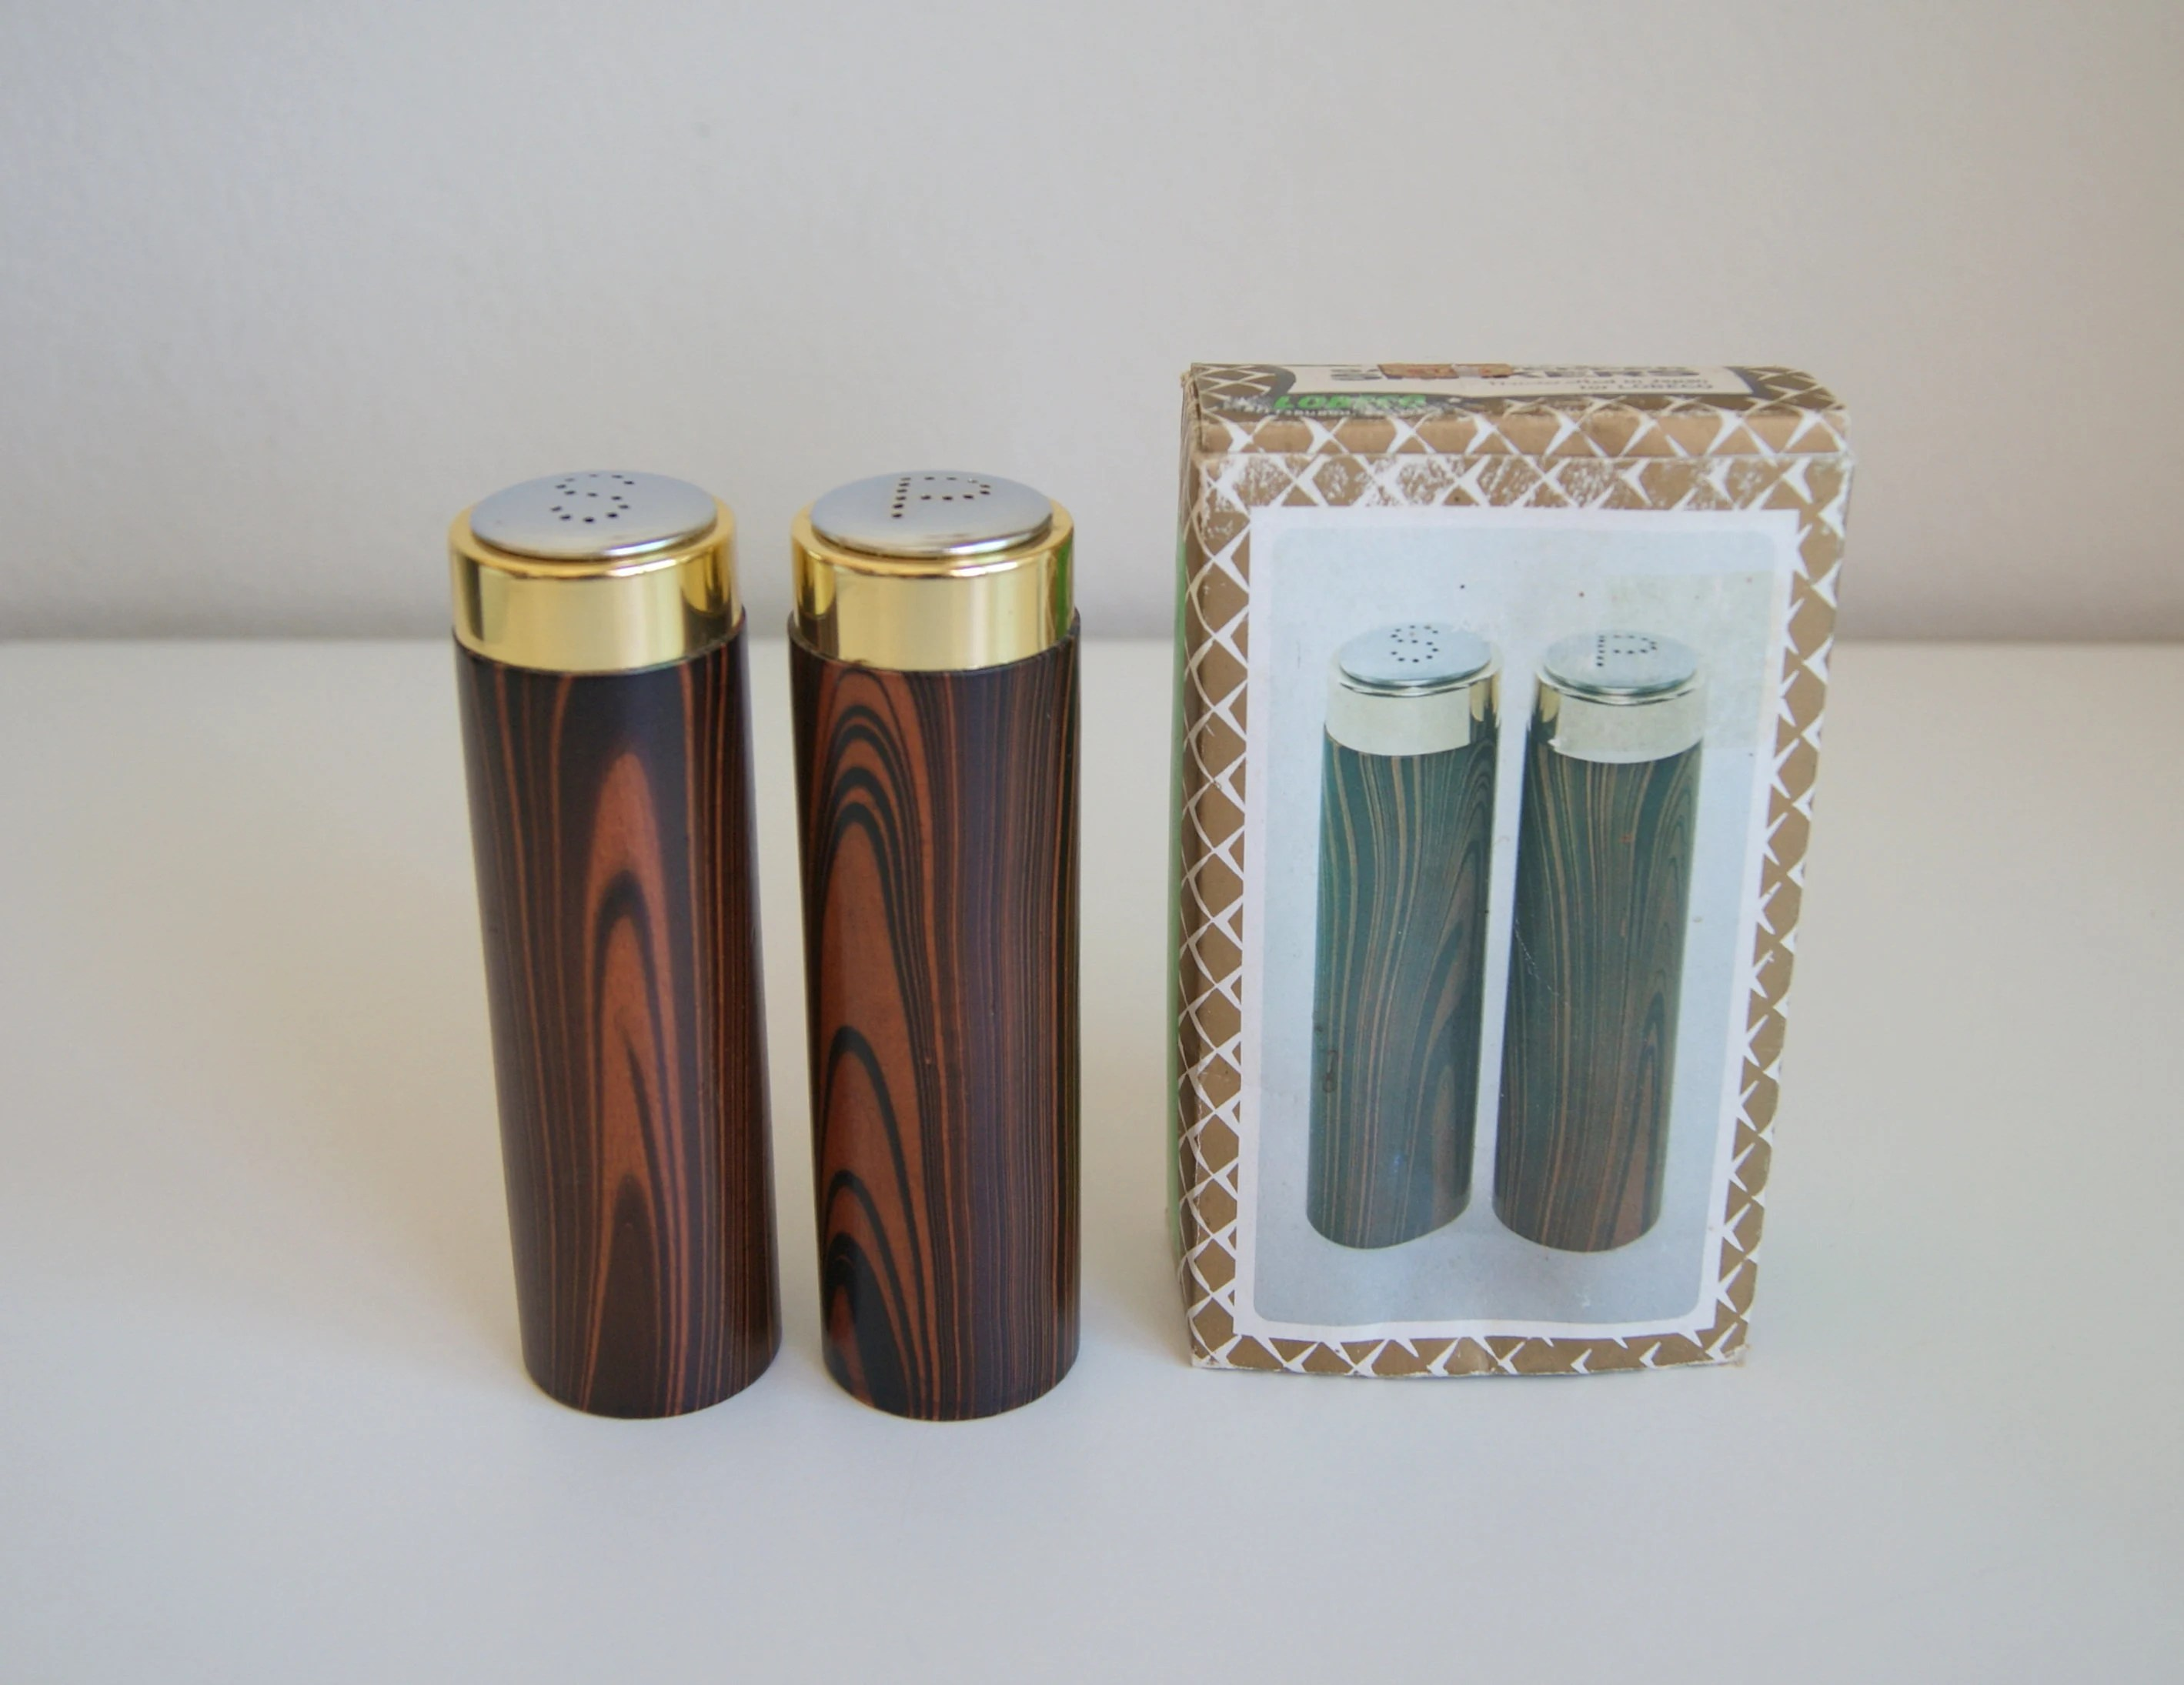 Modern Salt Pepper Shakers Handcrafted Pair Of Vintage Modern Salt Pepper Shakers By Lobeco Japan Nos